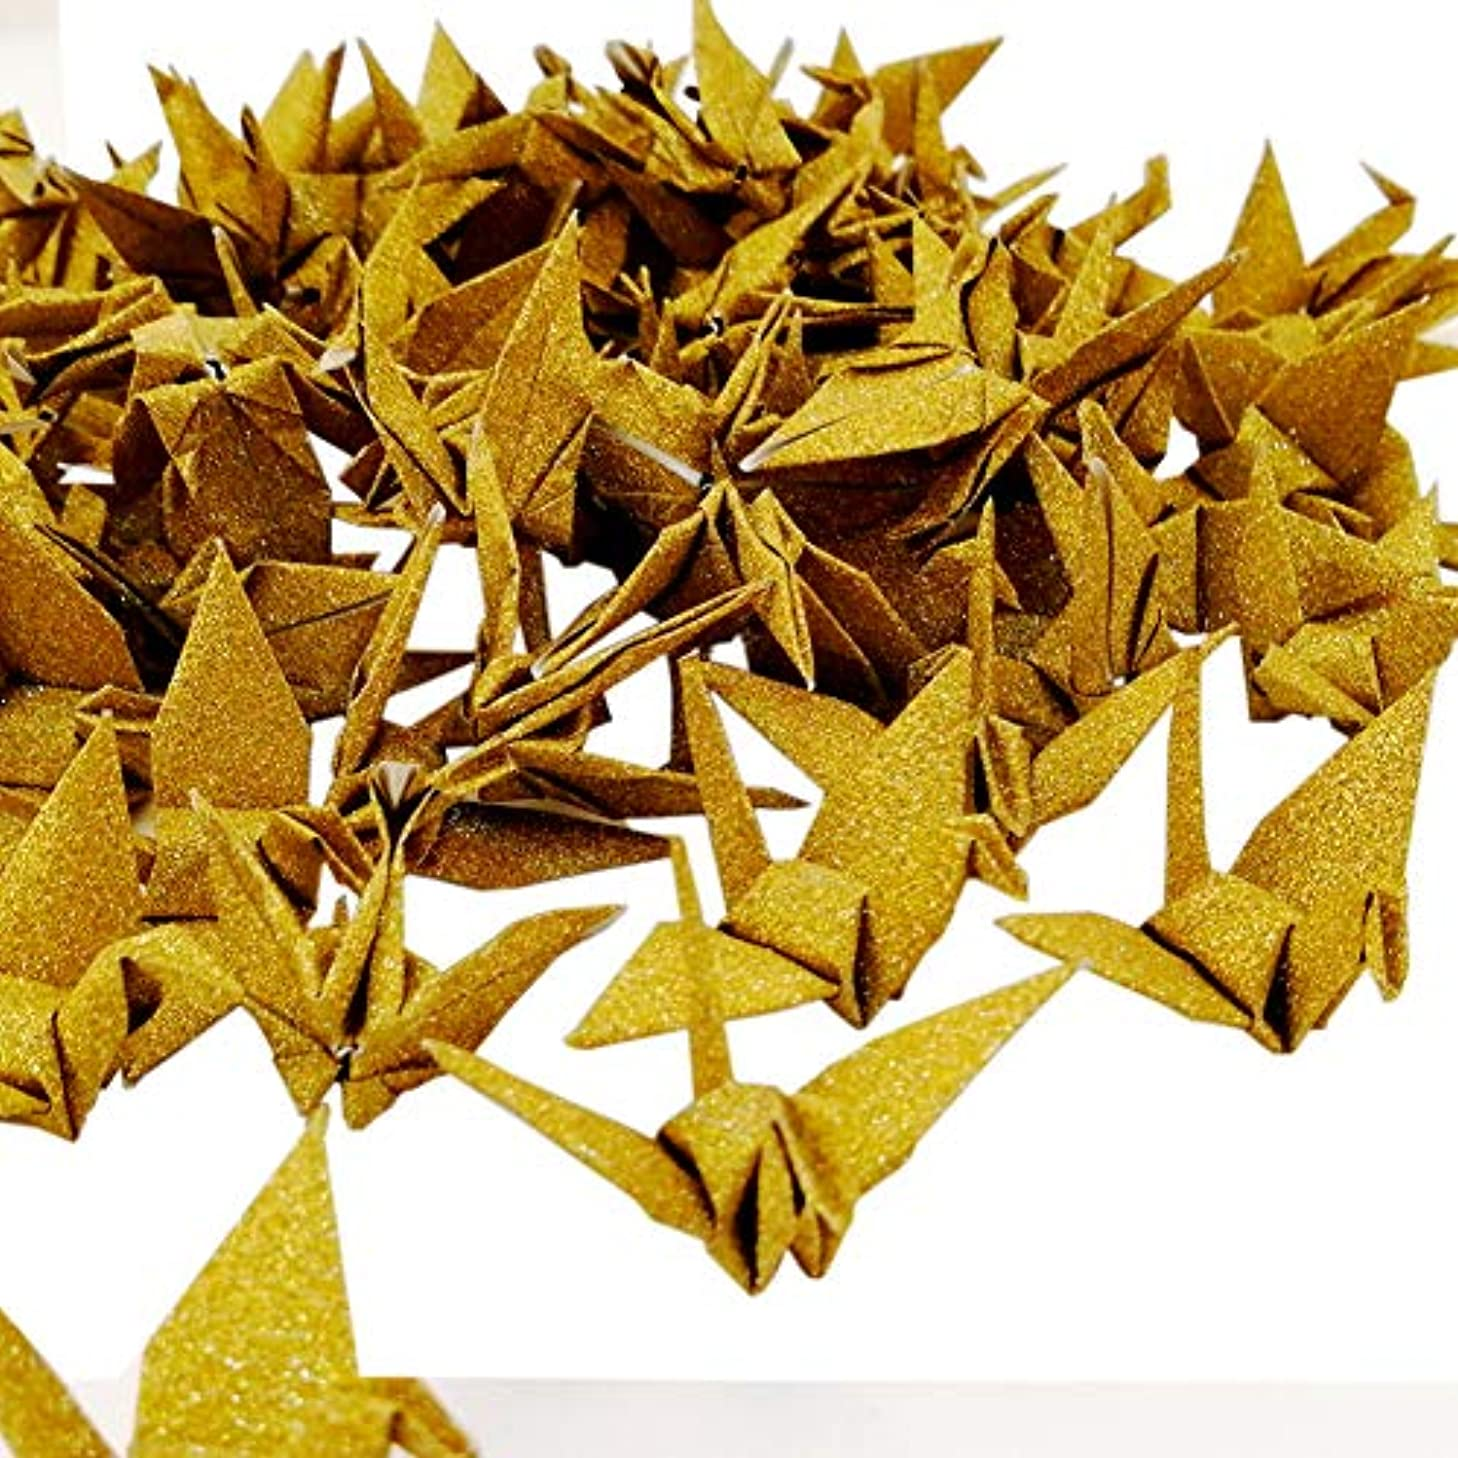 Hangnuo 50 PCS Glitter Origami Paper Cranes Folded DIY Japanese Crane Mobile String Garland for Wedding Party Backdrop Home Decoration, Glitter Gold